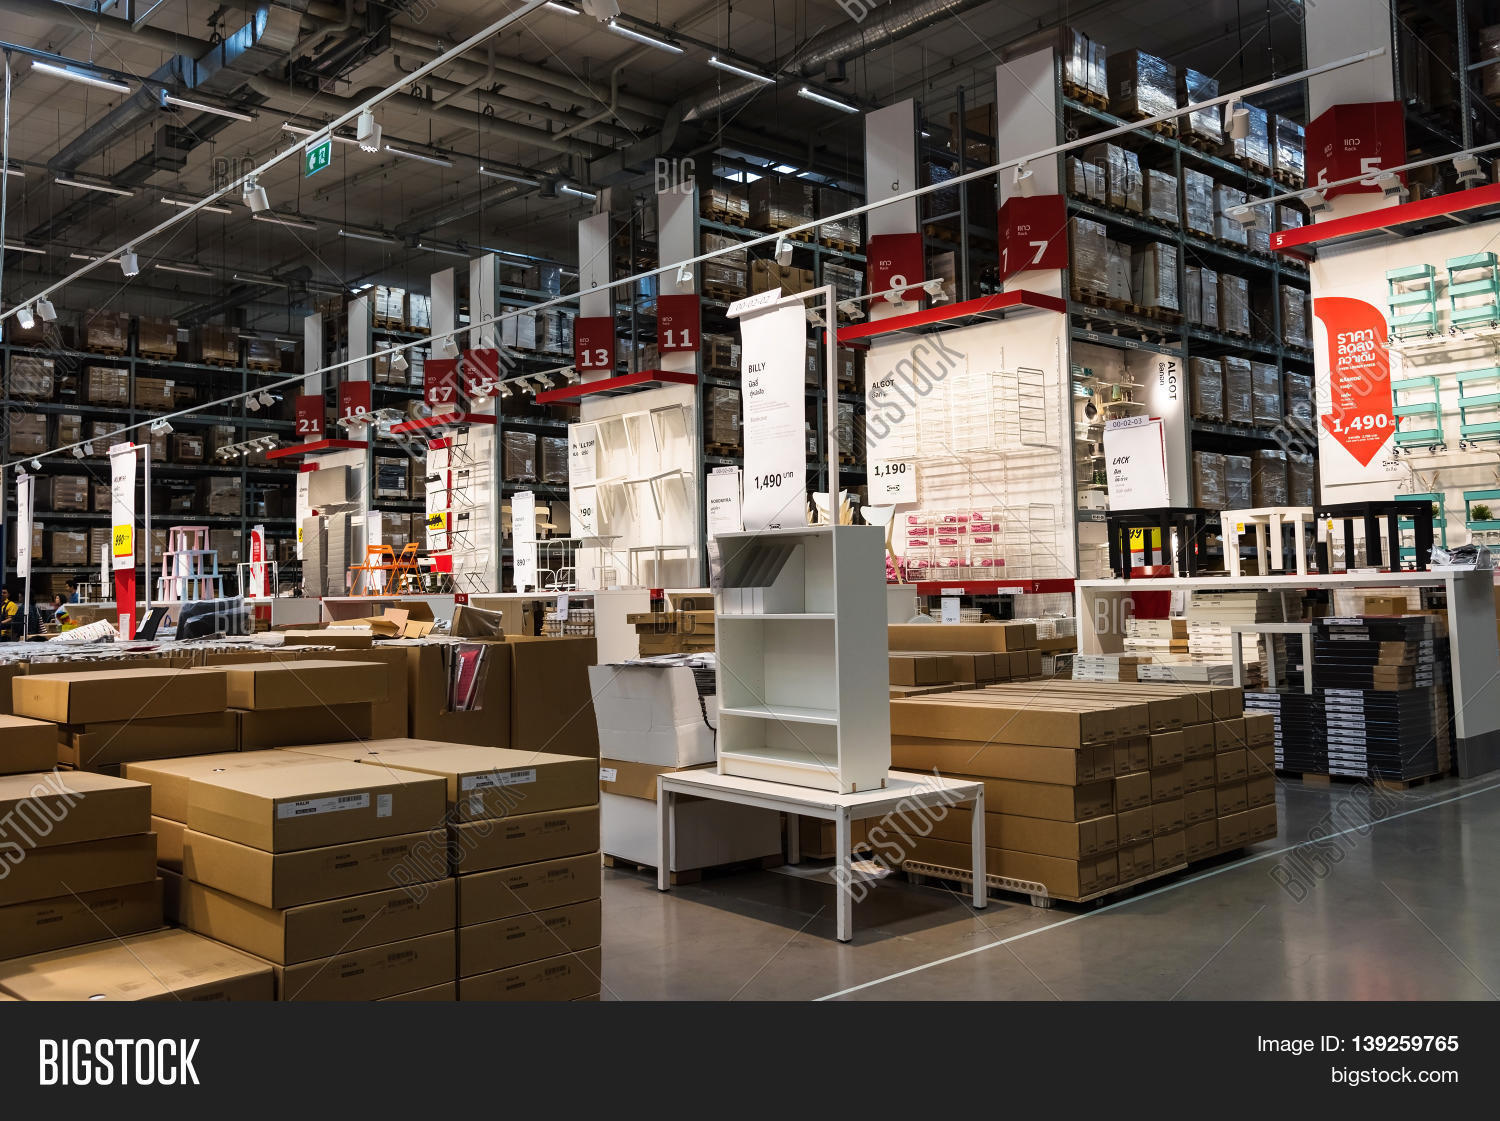 Ikea Furniture Store Image Photo Free Trial Bigstock